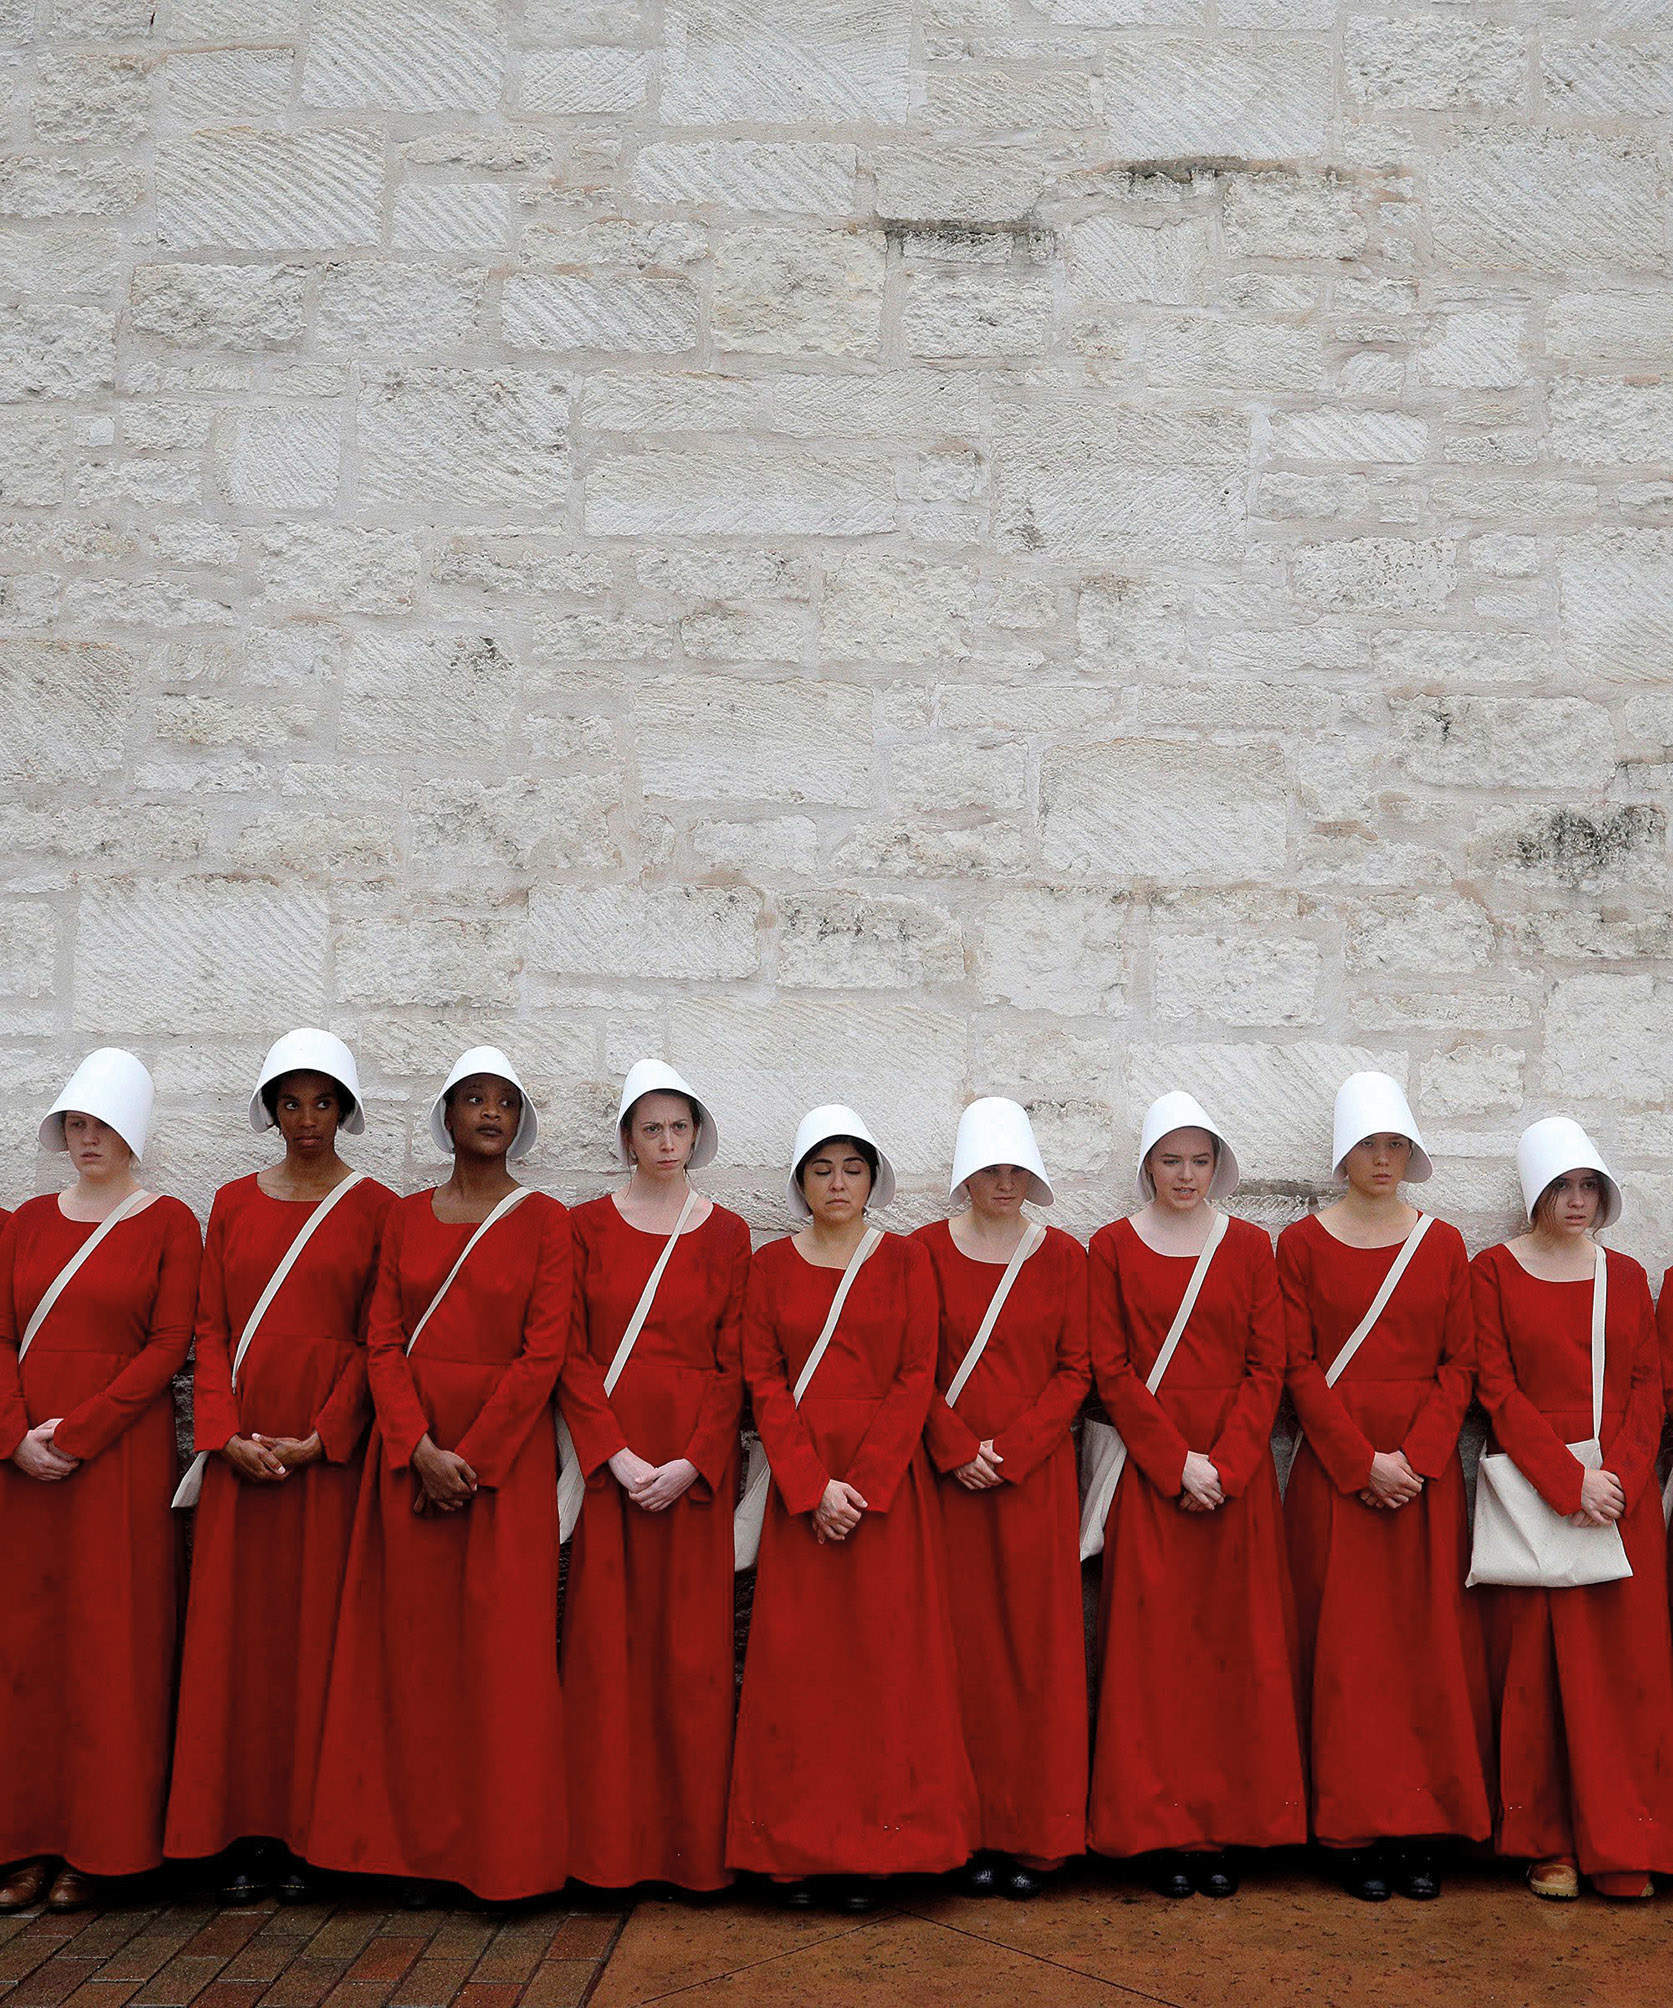 The Handmaid's Tale: Dystopian dread in the new golden age of television